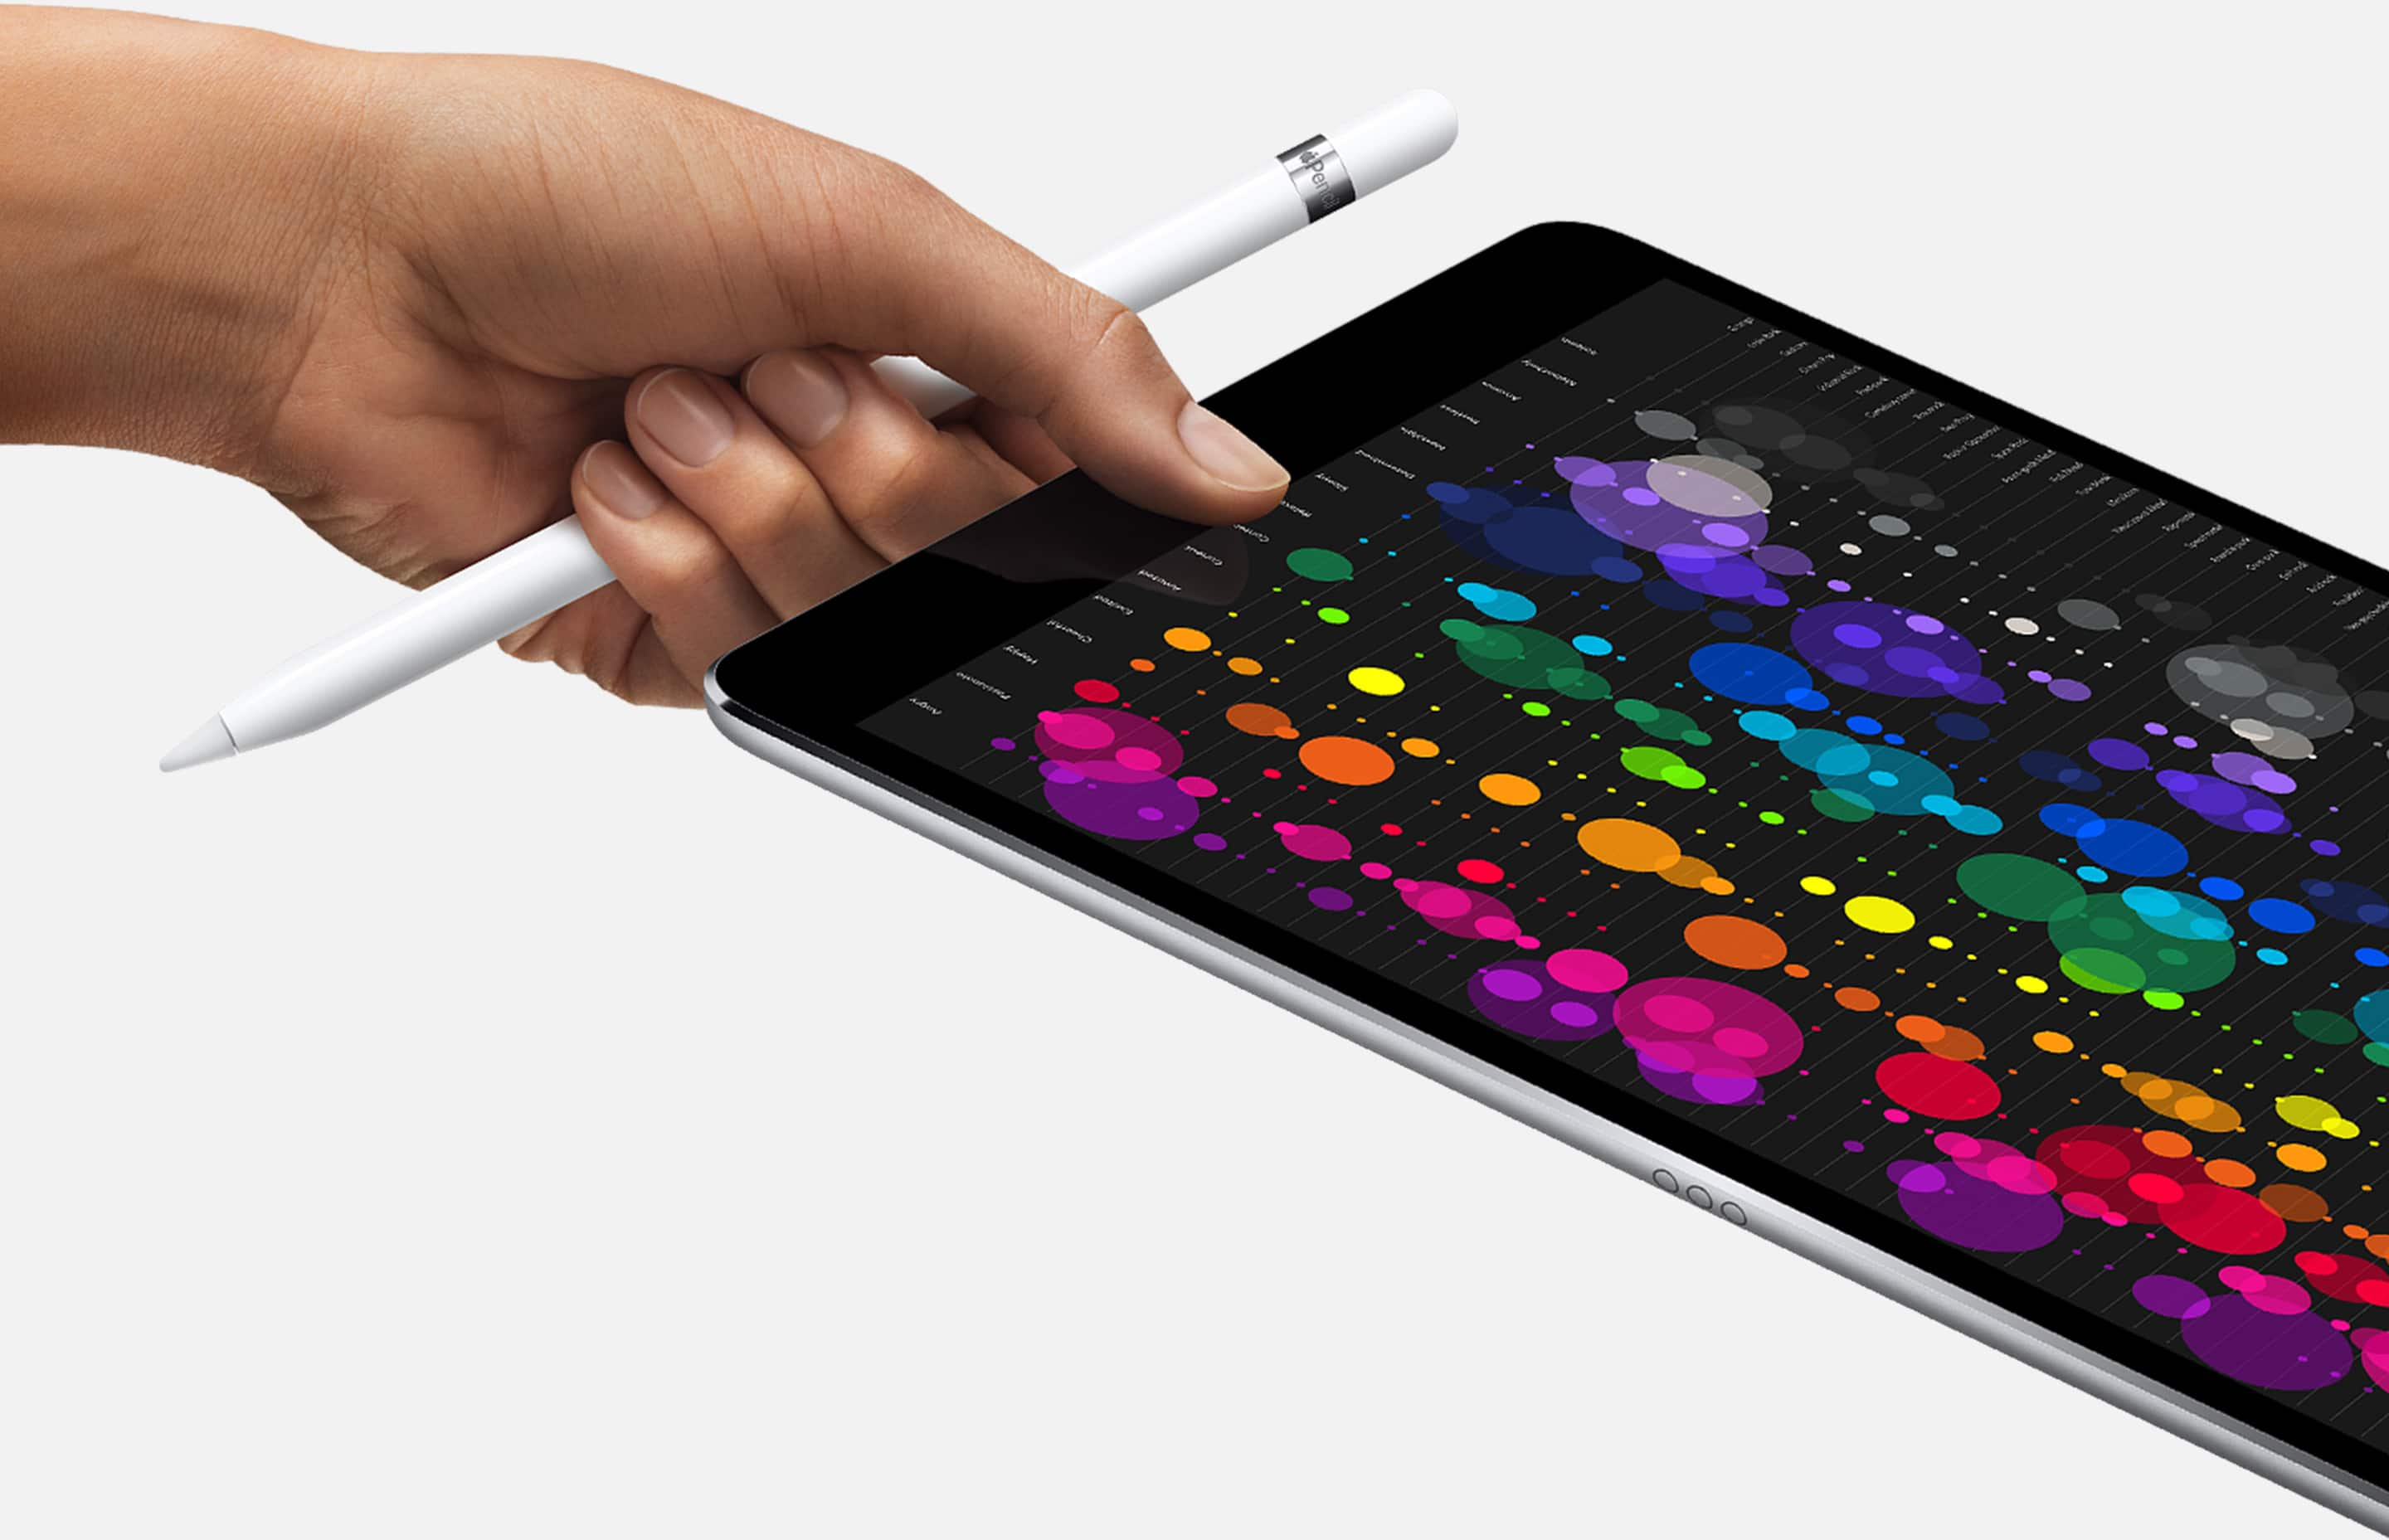 Apple iPad Pro 12.9-inch - Price, Features and Specs - AT&T